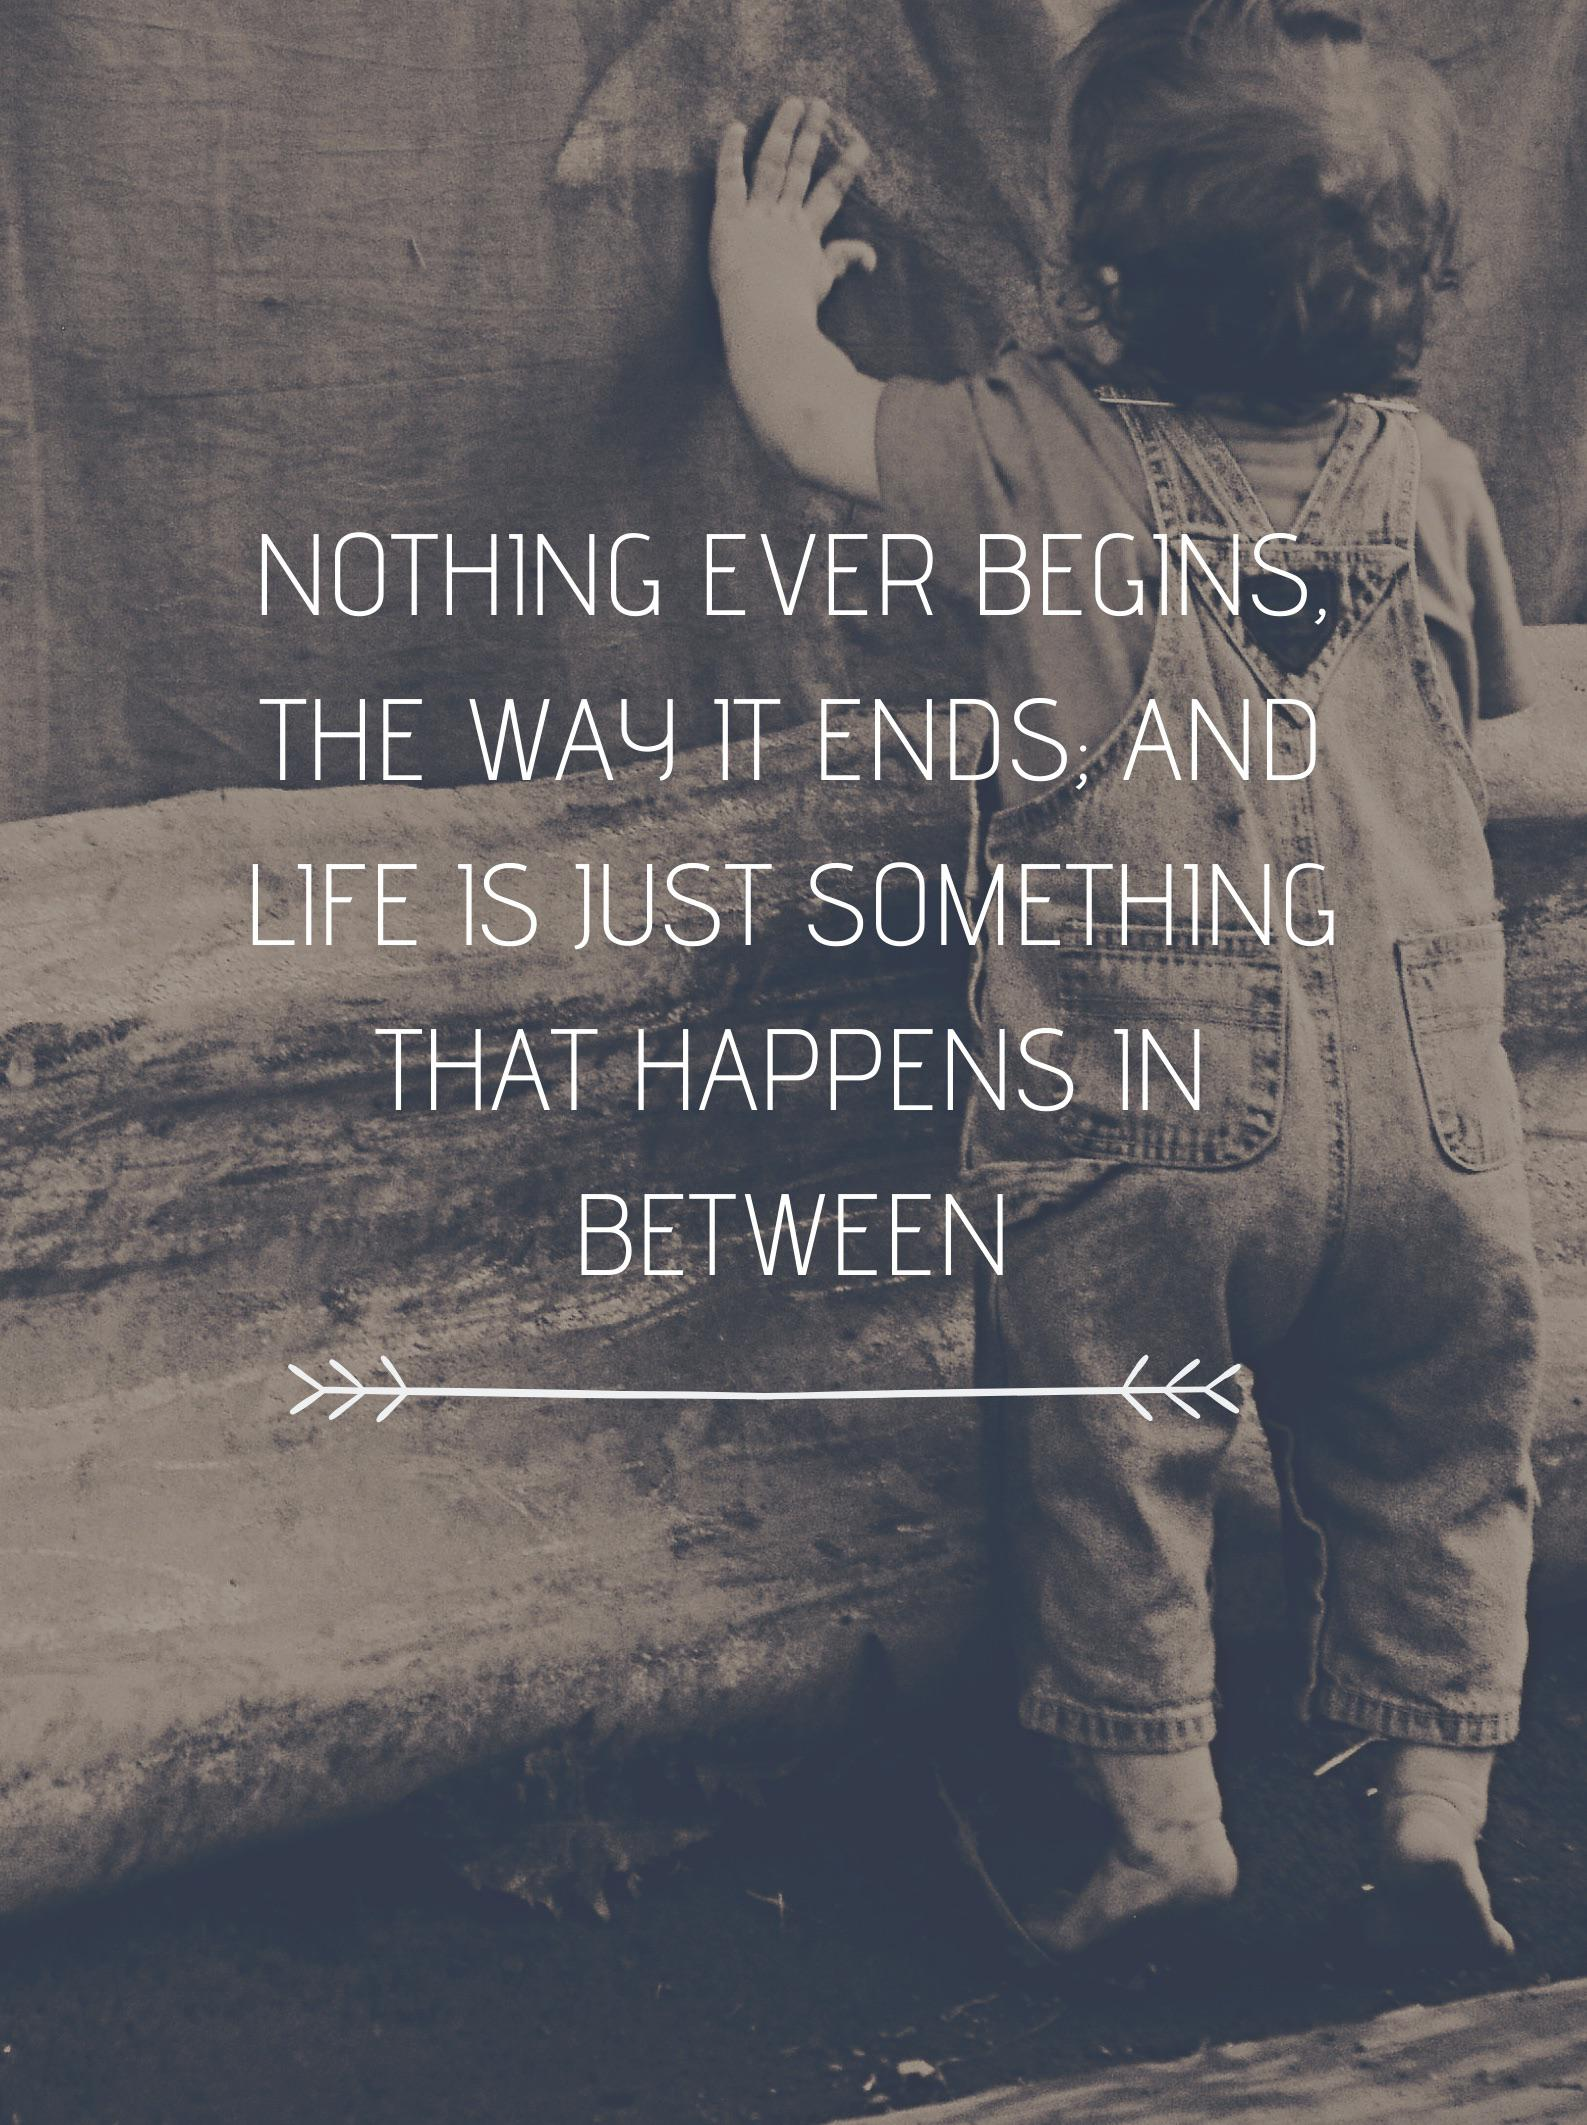 """Nothing ever begins, the way it ends; and life is just something that happens in between"" [OC] (765 x 1024)"